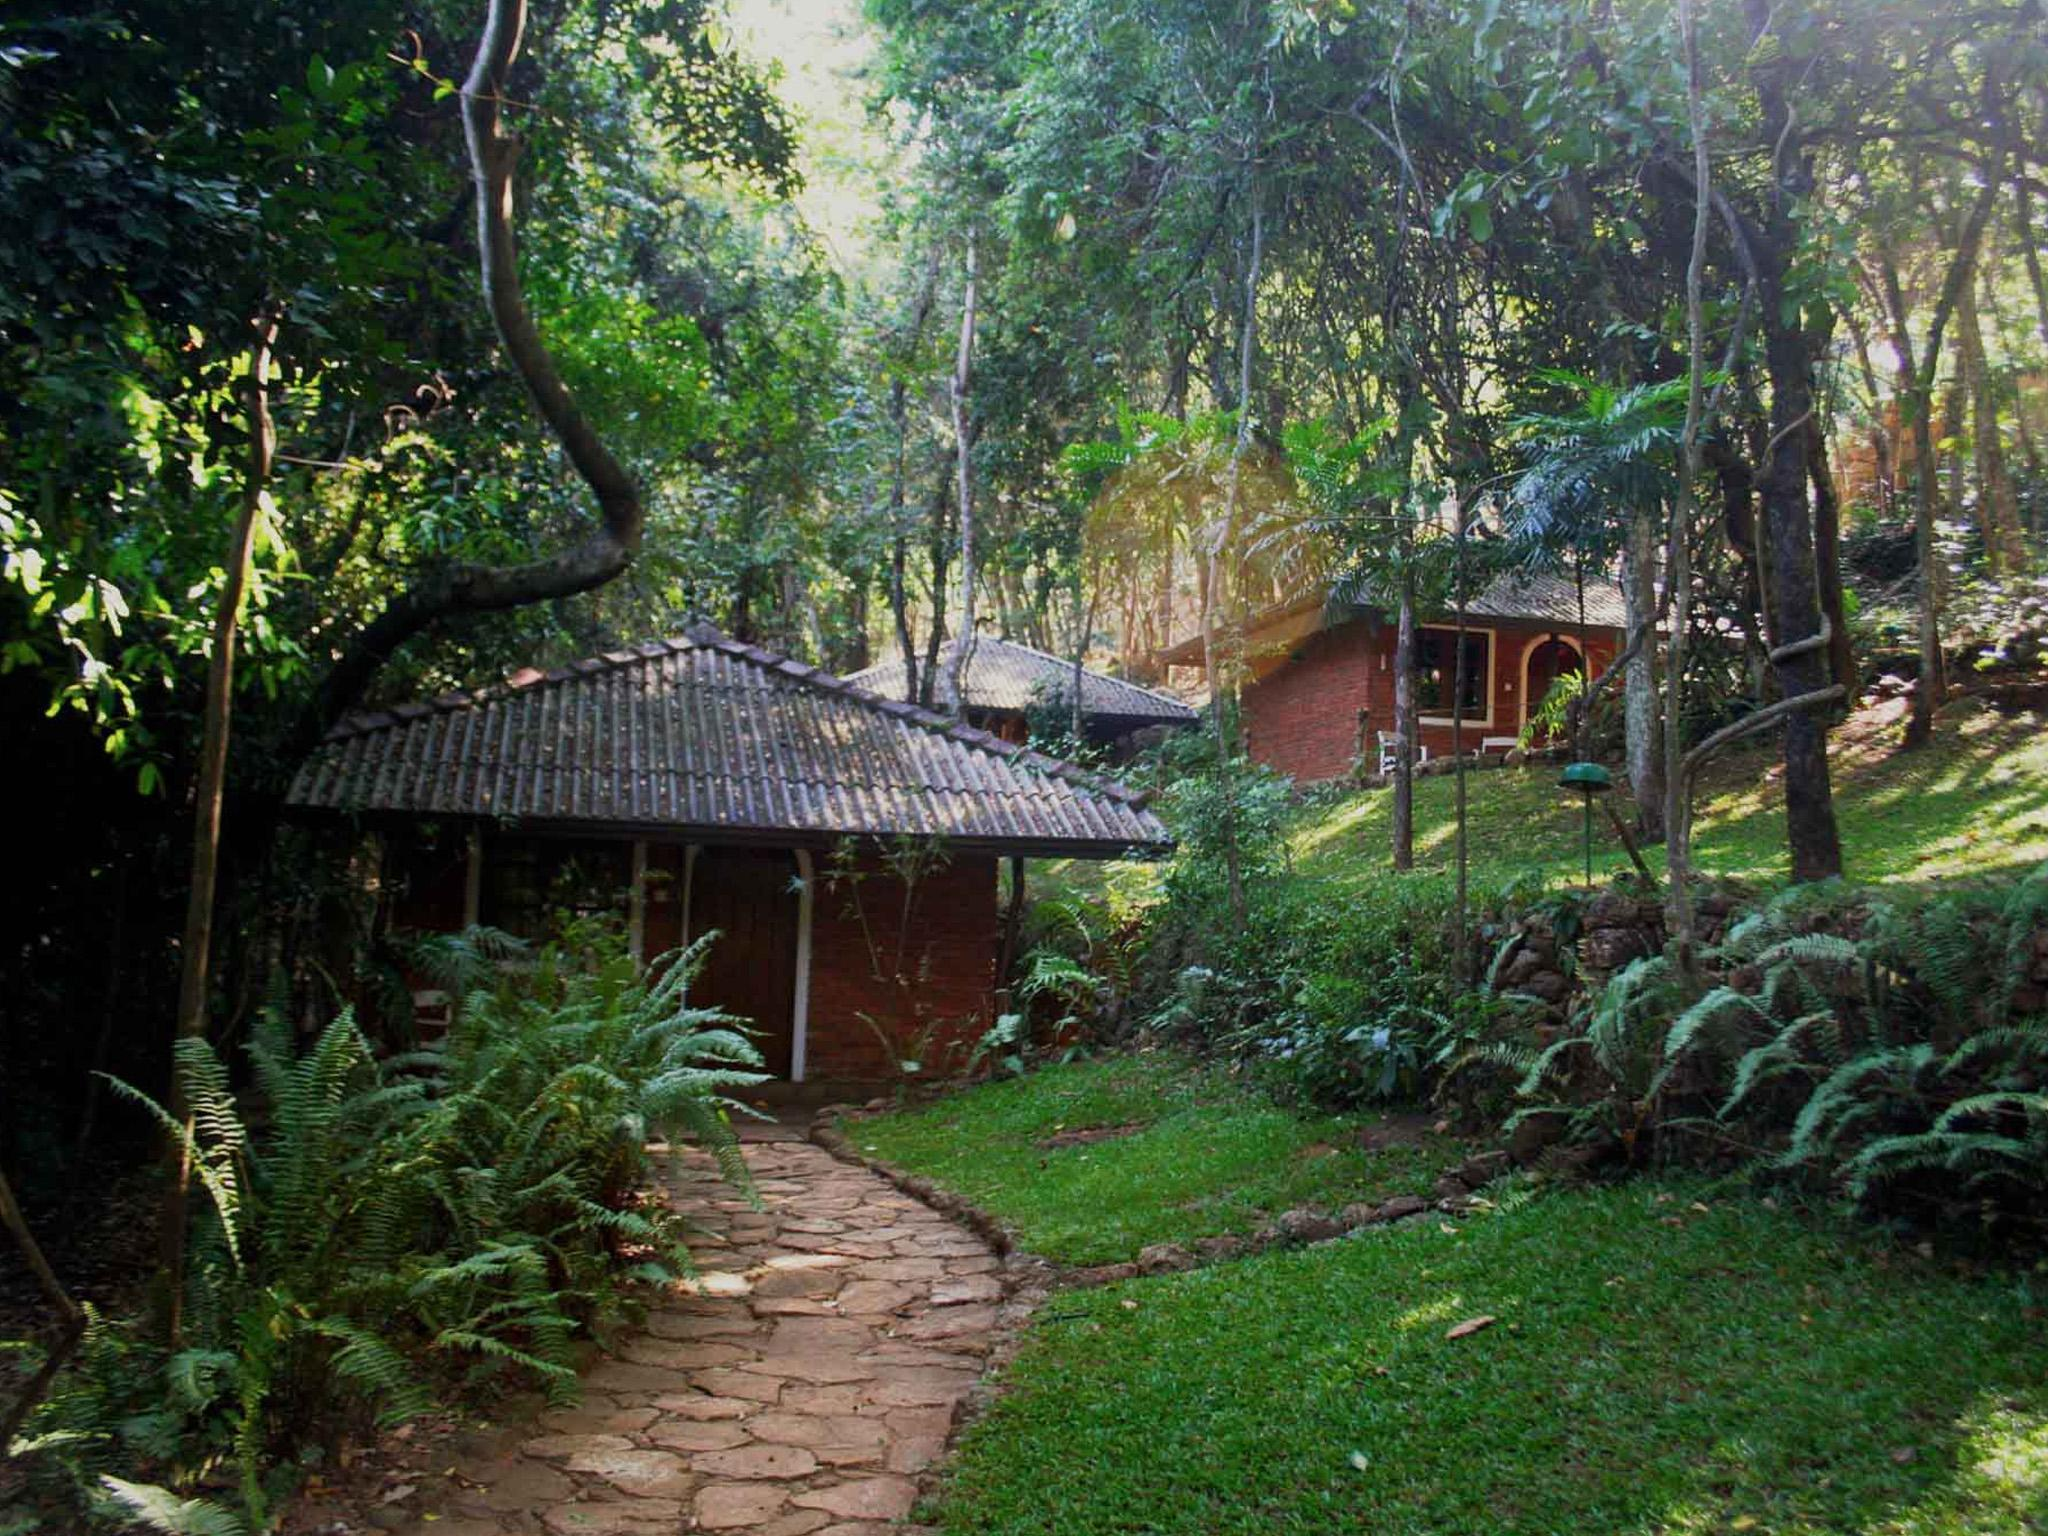 River Garden Resort - Rathnapura, Sri Lanka - Great discounted rates!